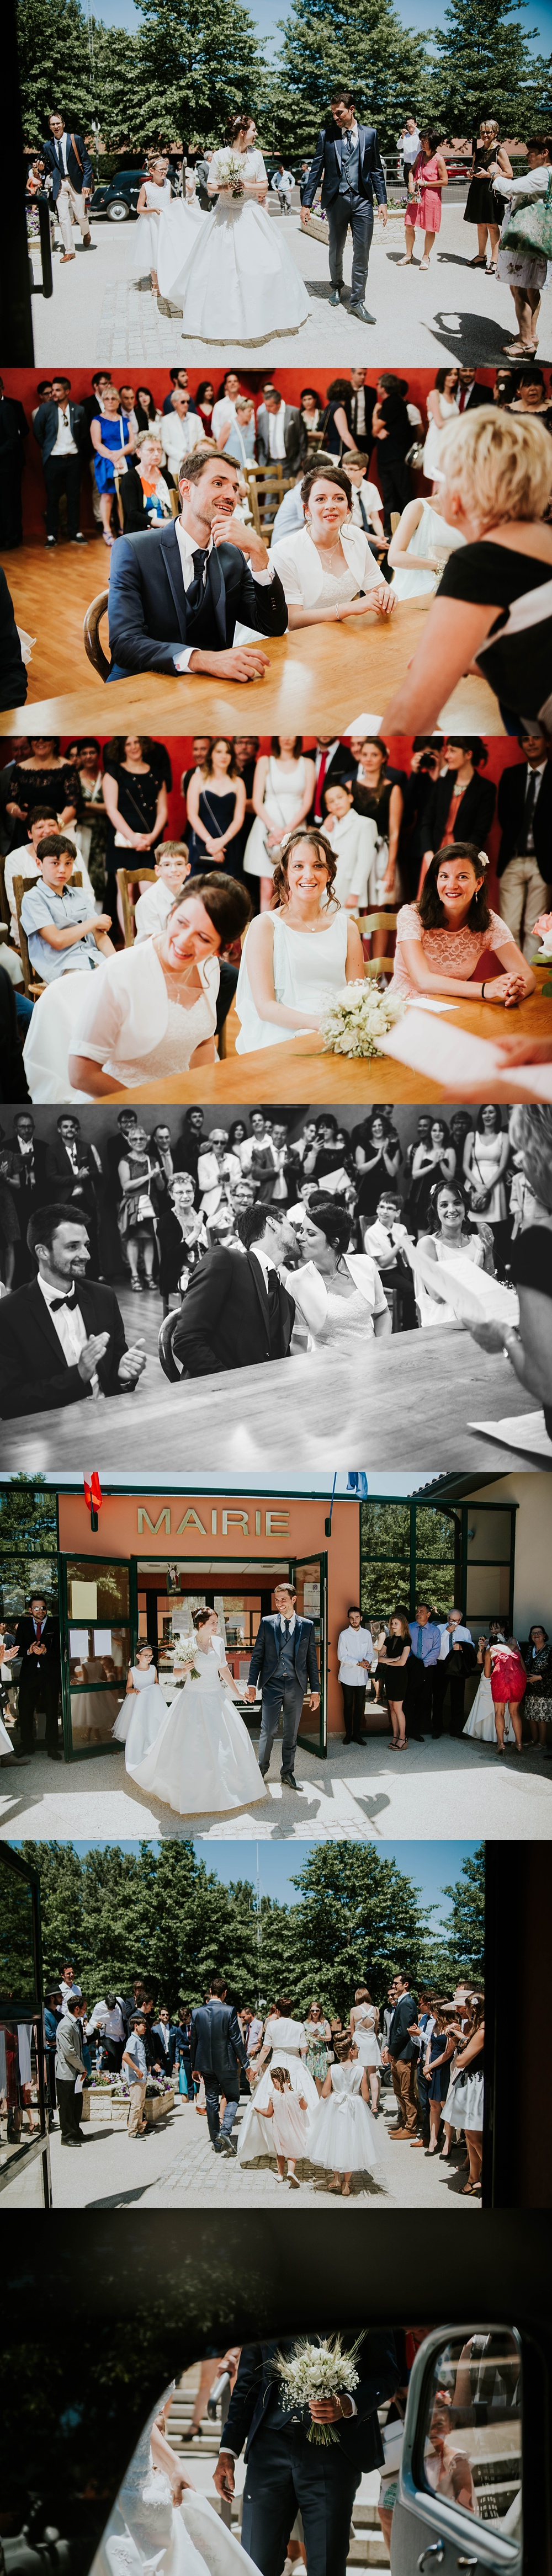 Mariage Auvergne France Wedding in France